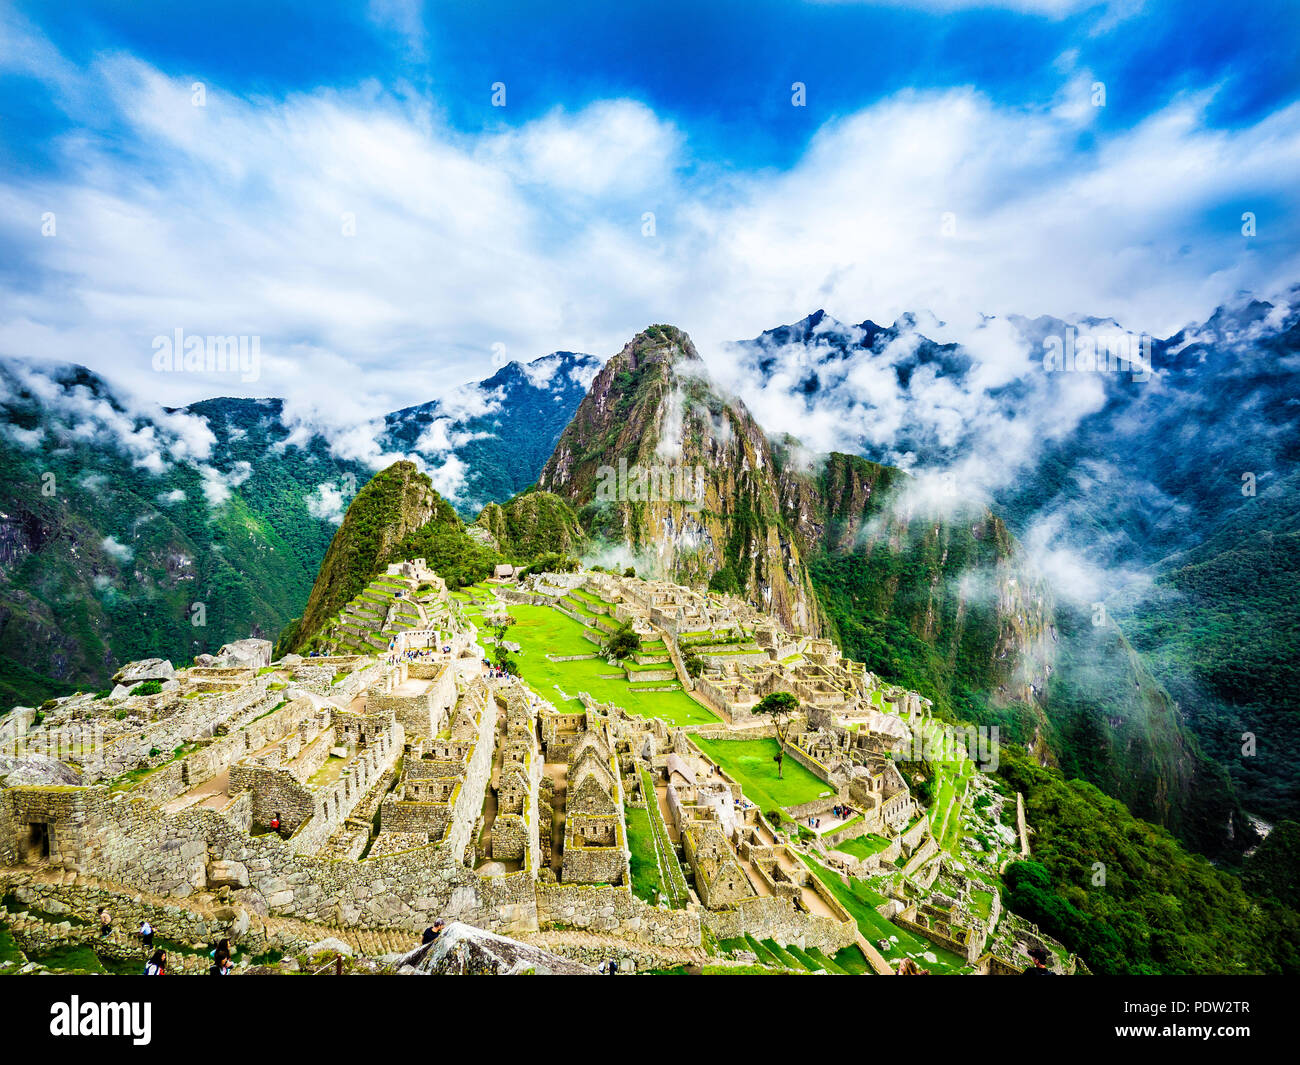 Panoramic Scenery of Machu Picchu Peru - Stock Image